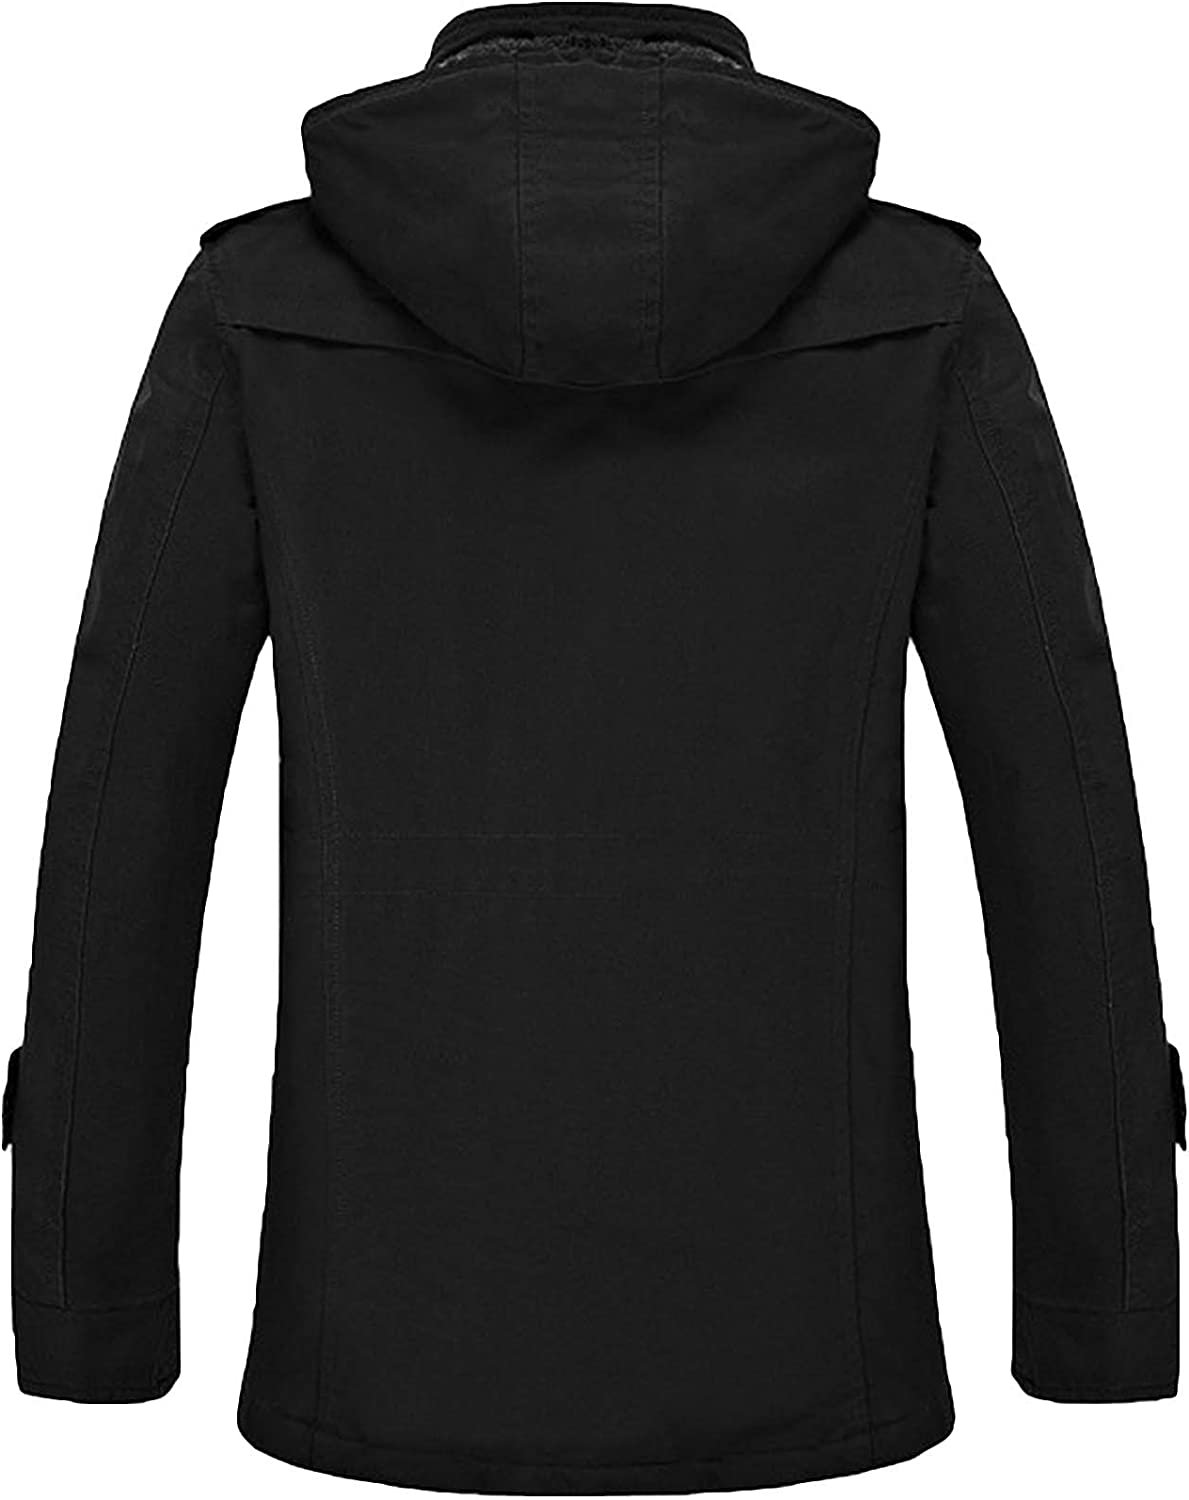 Nidicus Mens Classic Zipper Up Pea Coat with Removable Hood /& Fleece Lining